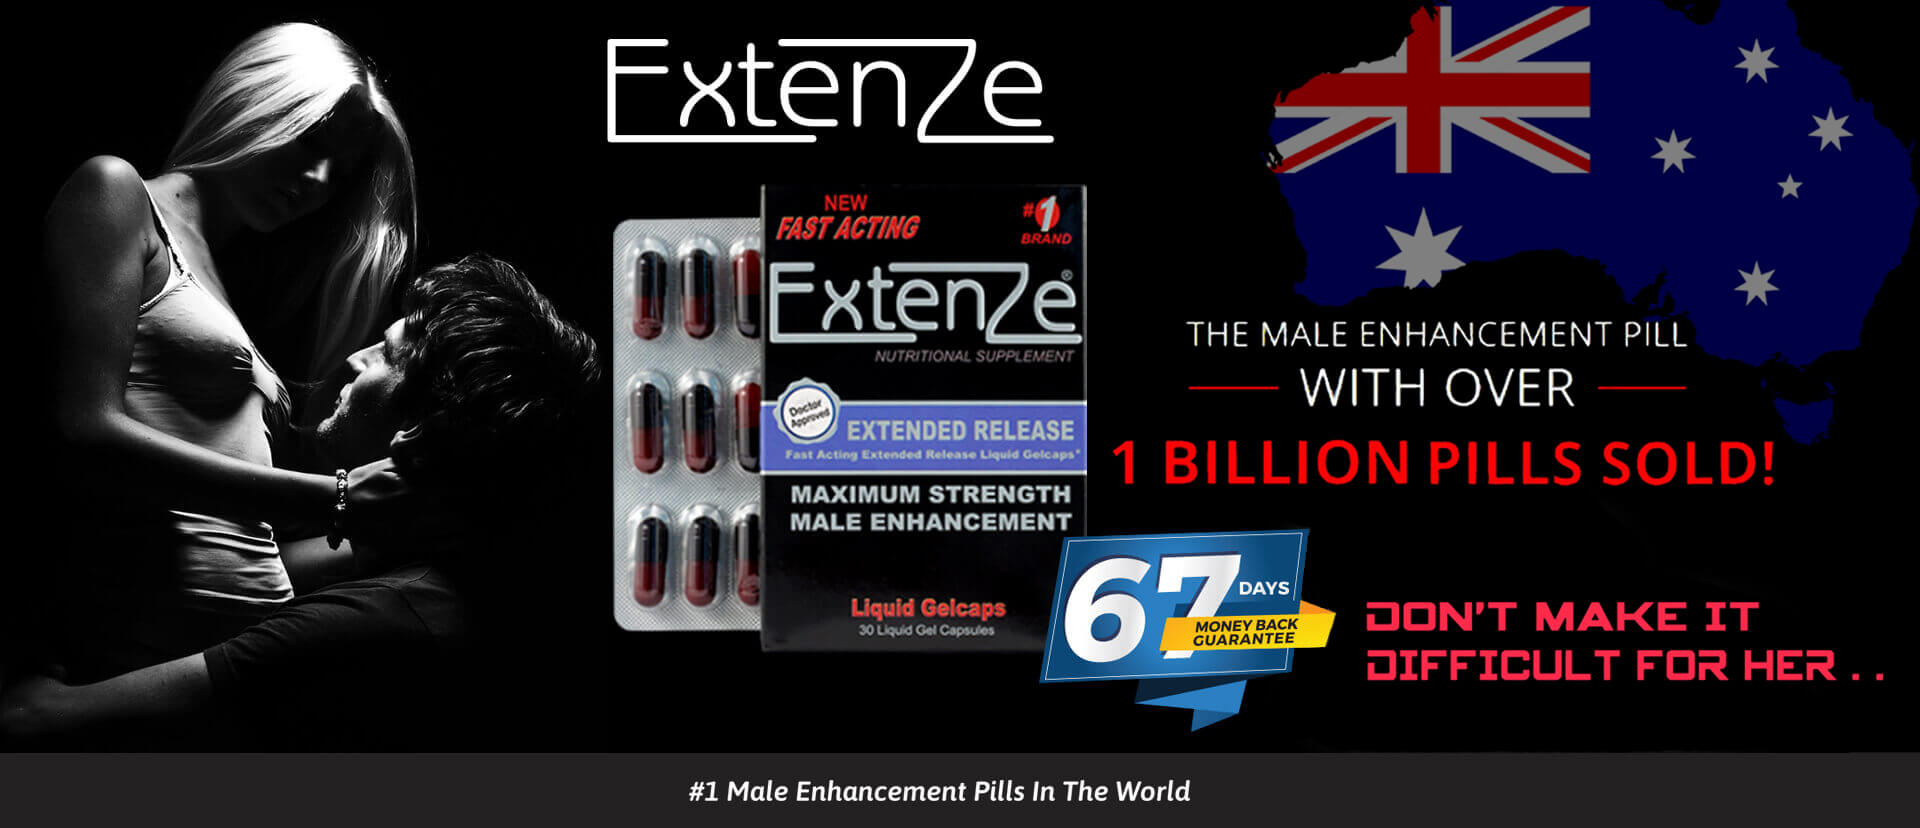 Does Giant Eagle Sell Extenze